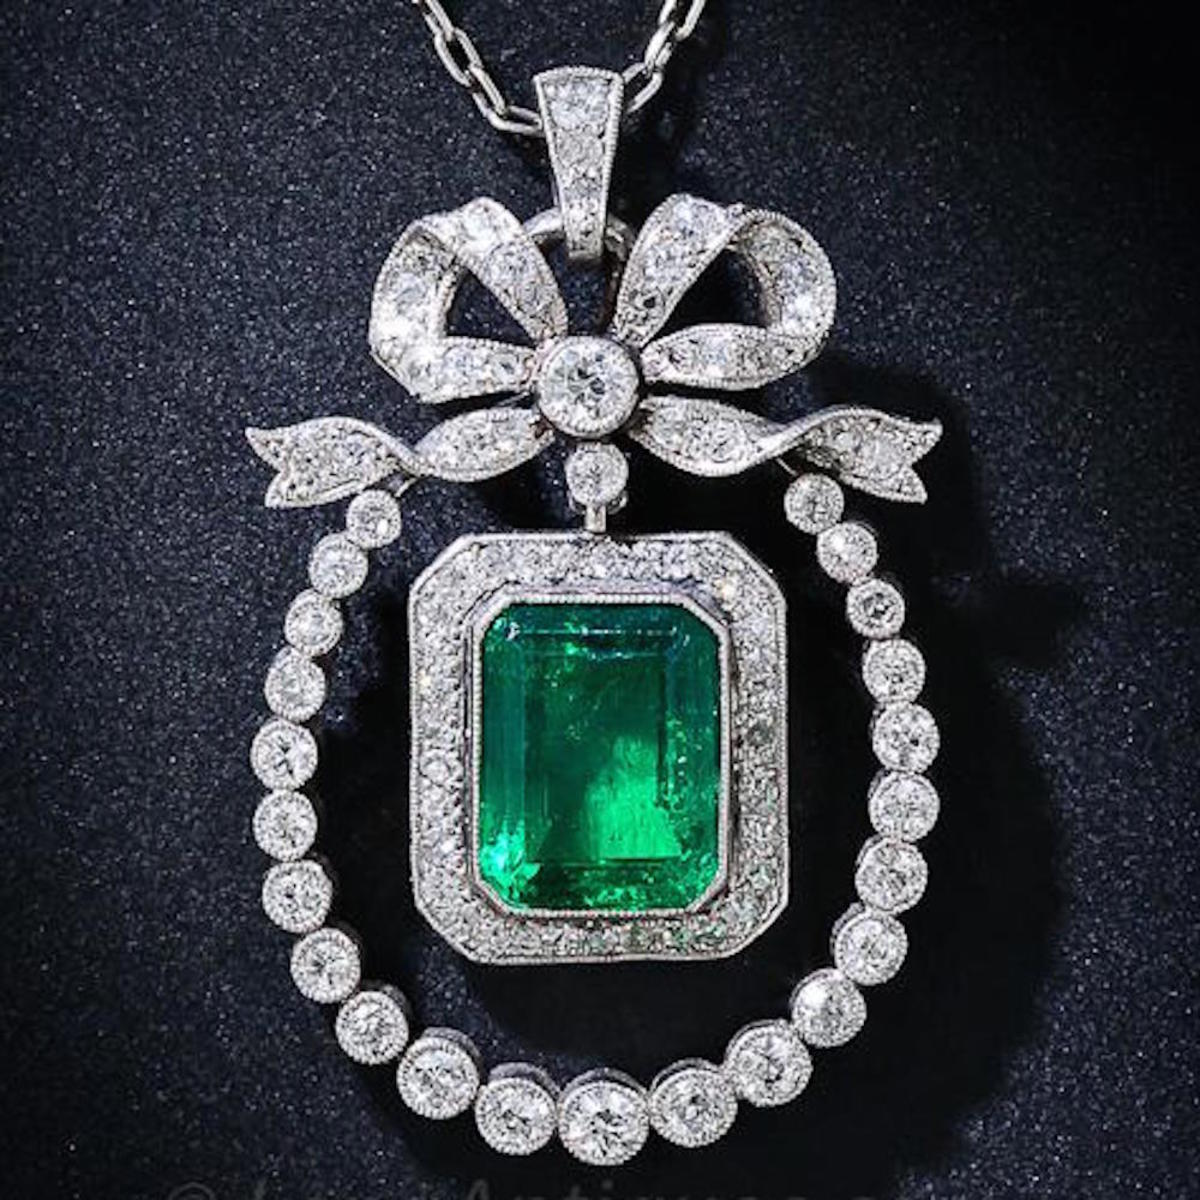 Edwardian Diamond And Emerald Pendant Necklace